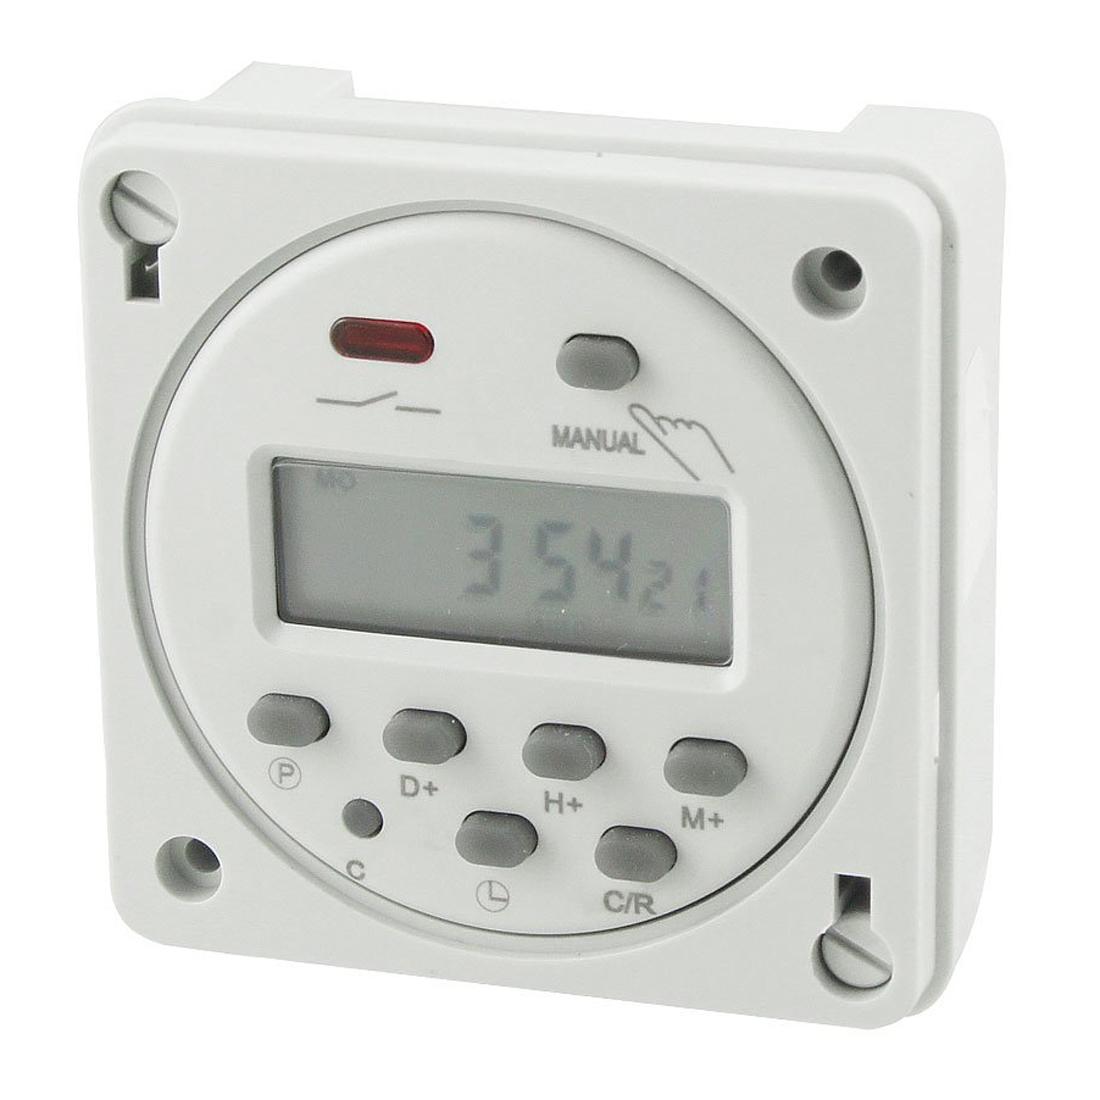 Digital Power Timer : Cn a led digital power programmable electronic timer ac